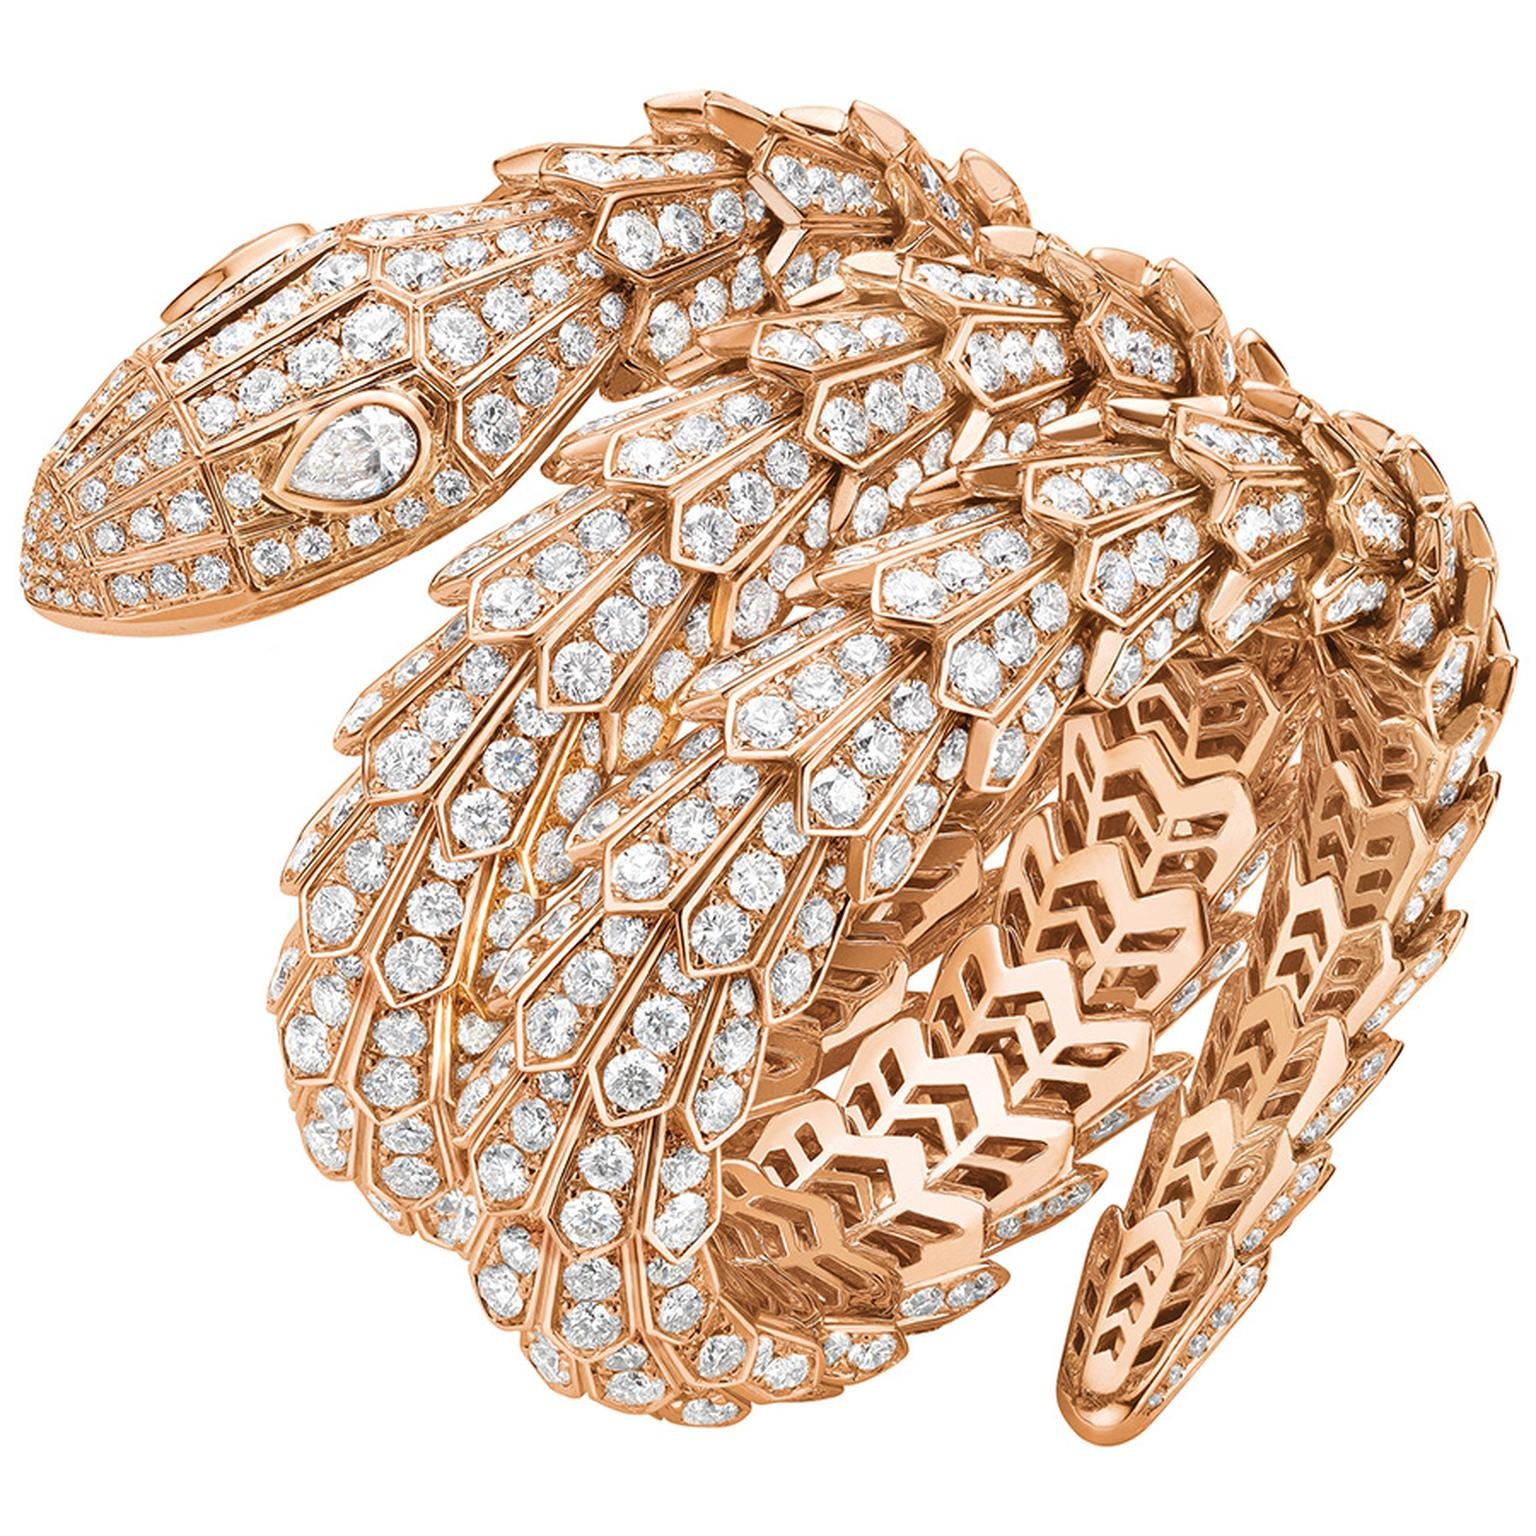 Bulgari-Serpenti-gold-and-diamond